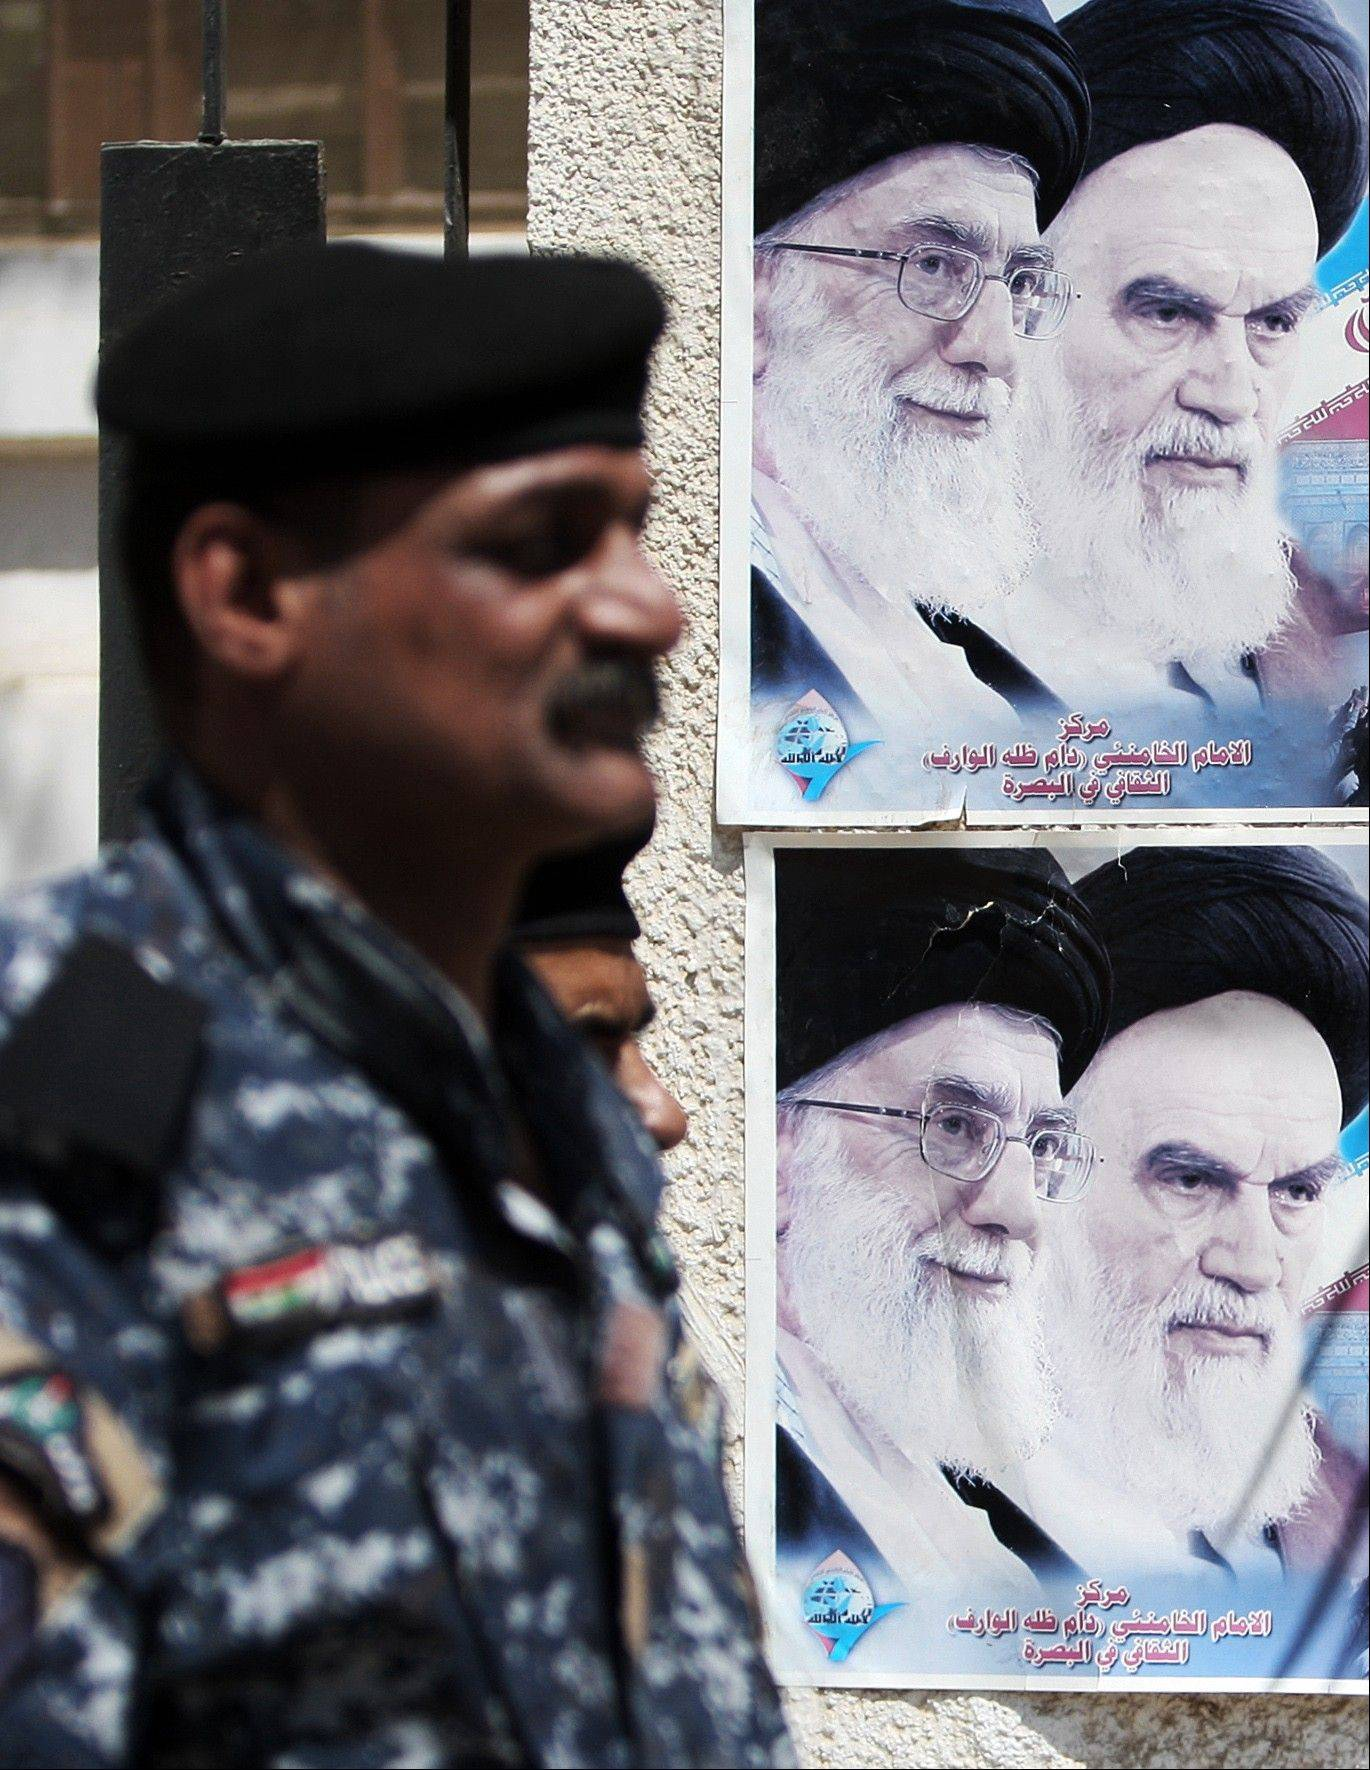 An Iraqi soldier stands guard next to a poster depicting late Iran's spiritual leaders Ayatollah Khomeini, right, and Ayatollah Khamenei, left, in Basra, 340 miles southeast of Baghdad, Iraq. After years of growing influence, a new sign of Iranís presence in Iraq has hit the streets. Thousands of signs, that is, depicting Iran's supreme leader gently smiling to a population once mobilized against the Islamic Republic in eight years of war.